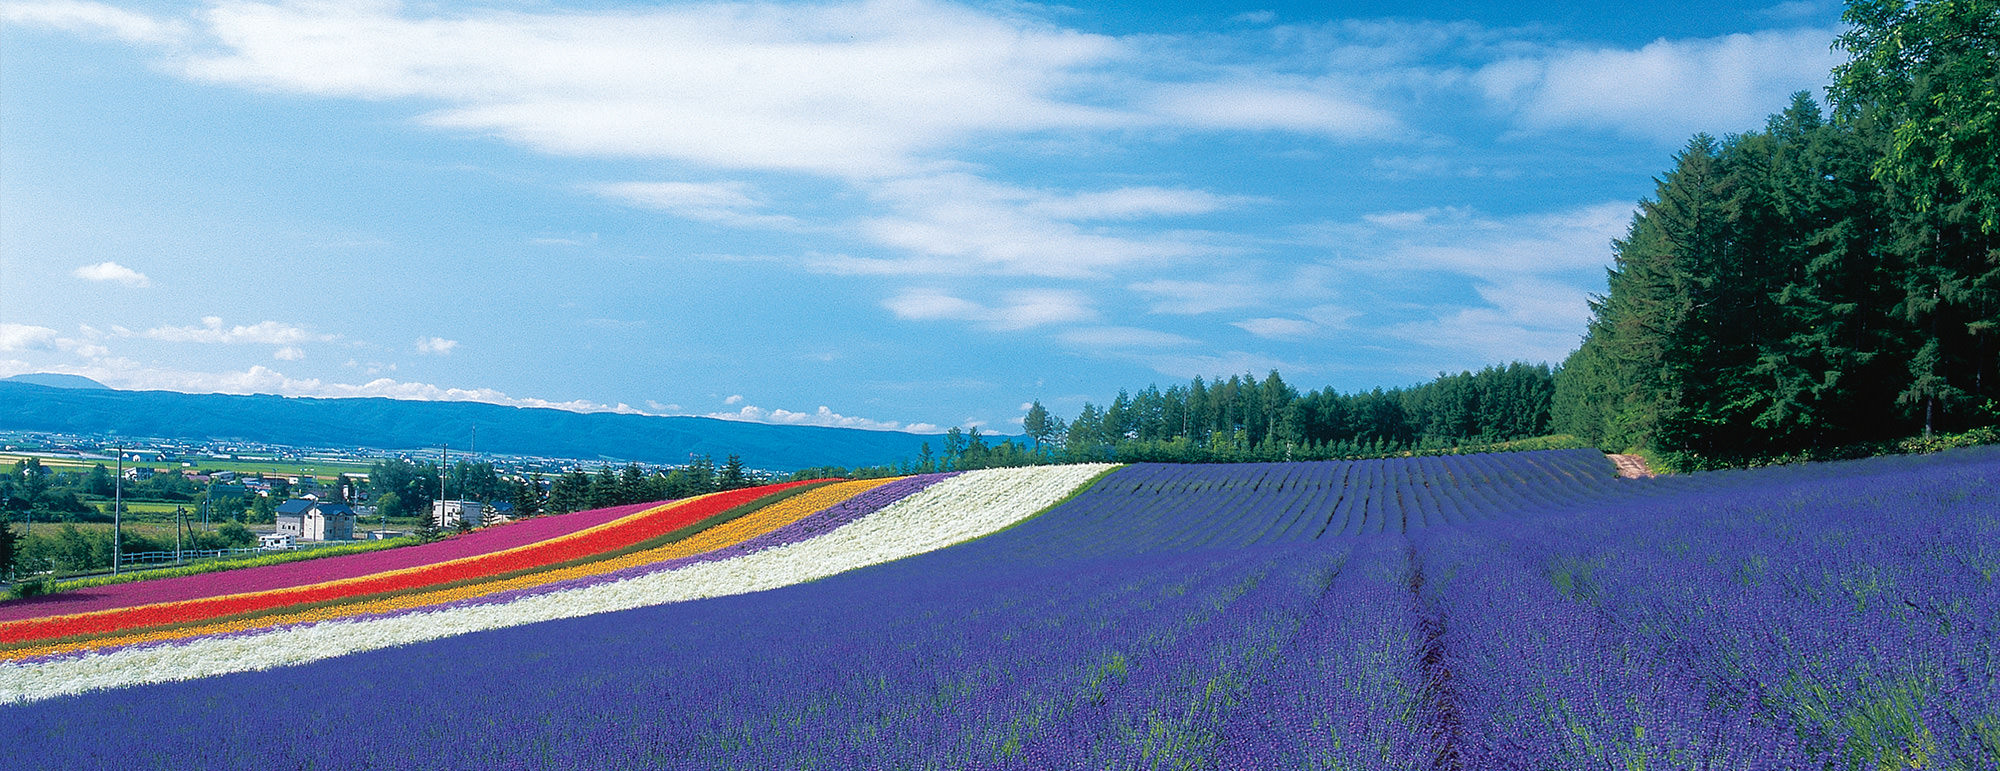 Lavender Fields Hokkaido Is Japan Cool Travel And